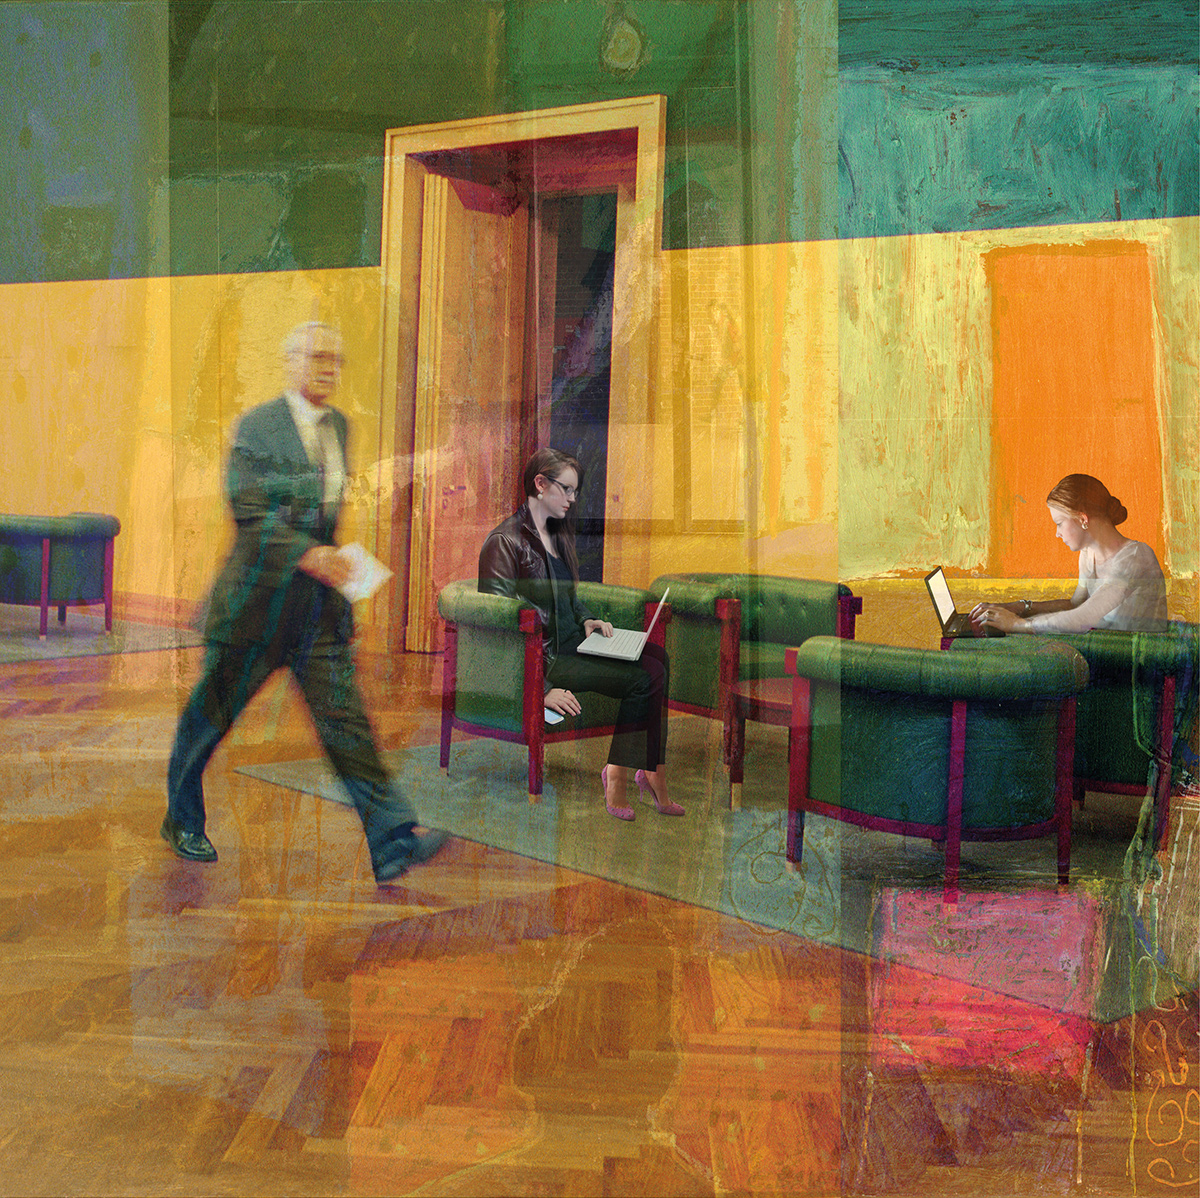 An image from Catherine Balet's book Moods in a Room